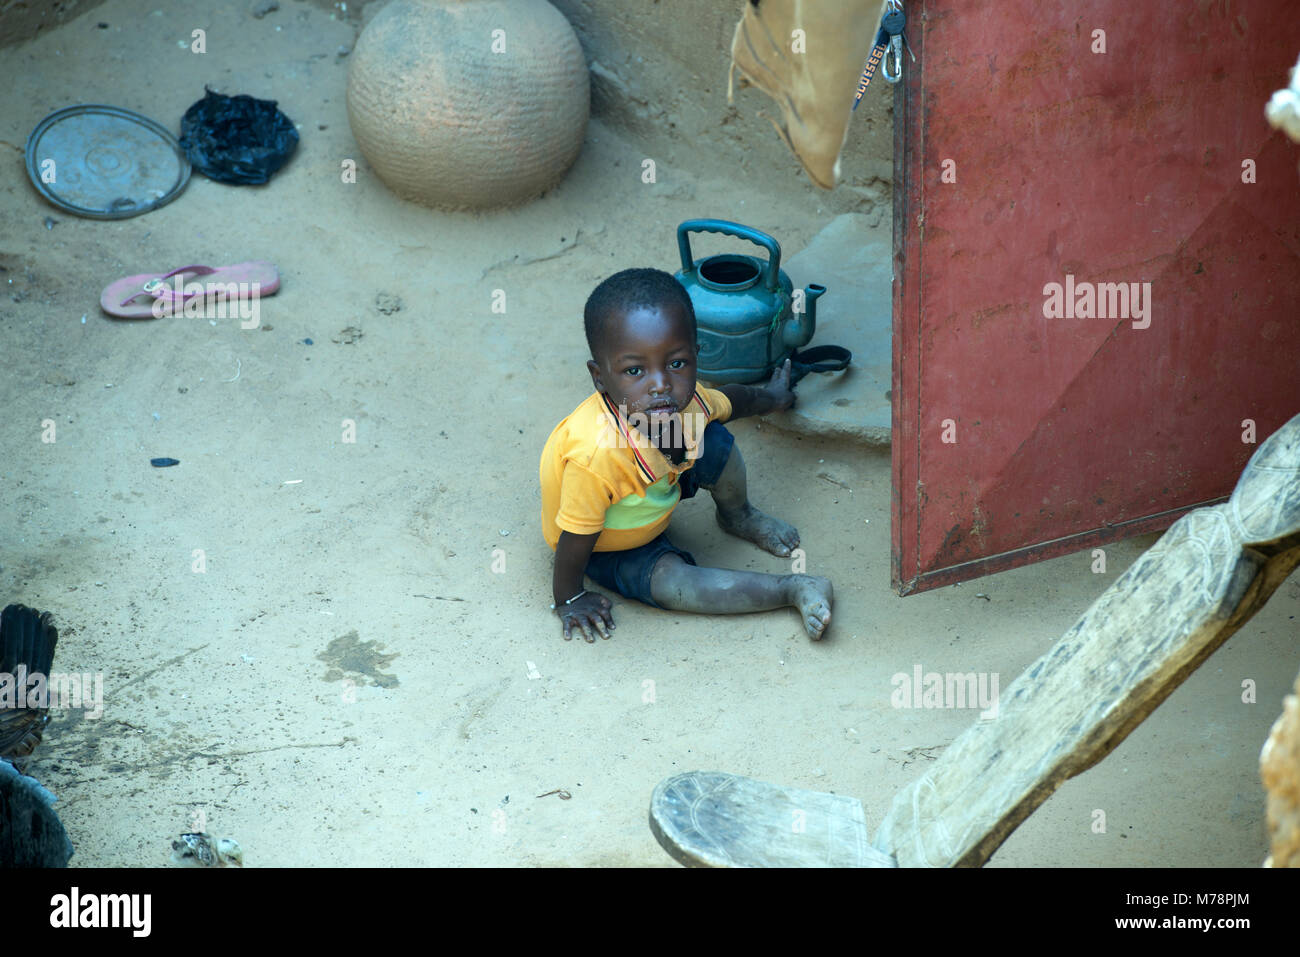 A young, indigenous Dogon boy living in poverty in a village in Dogon country, Mali, West Africa. - Stock Image